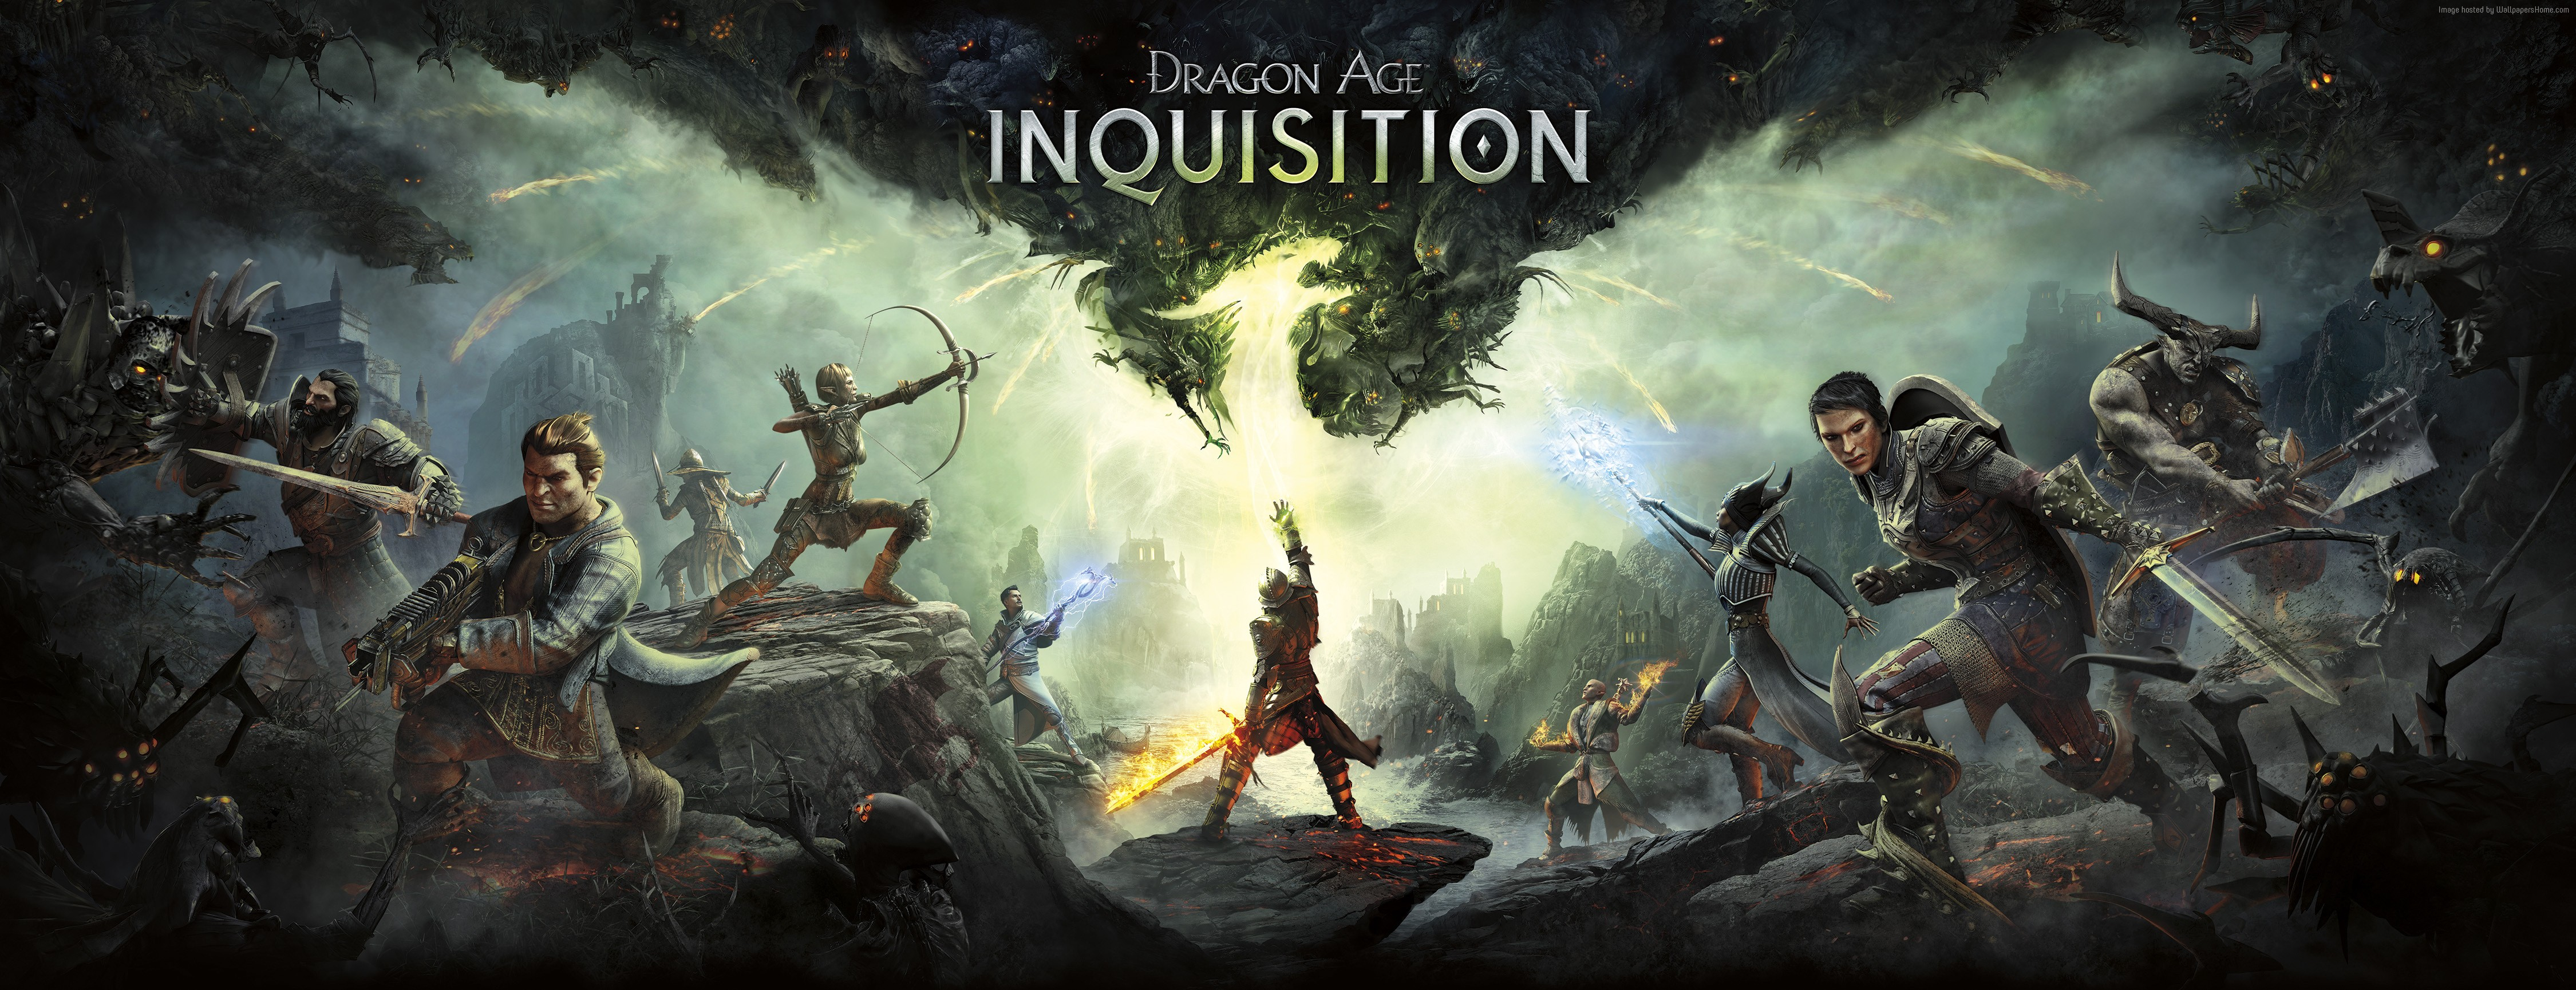 wallpaper dragon age: inquisition, game, rpg, fantasy, green light